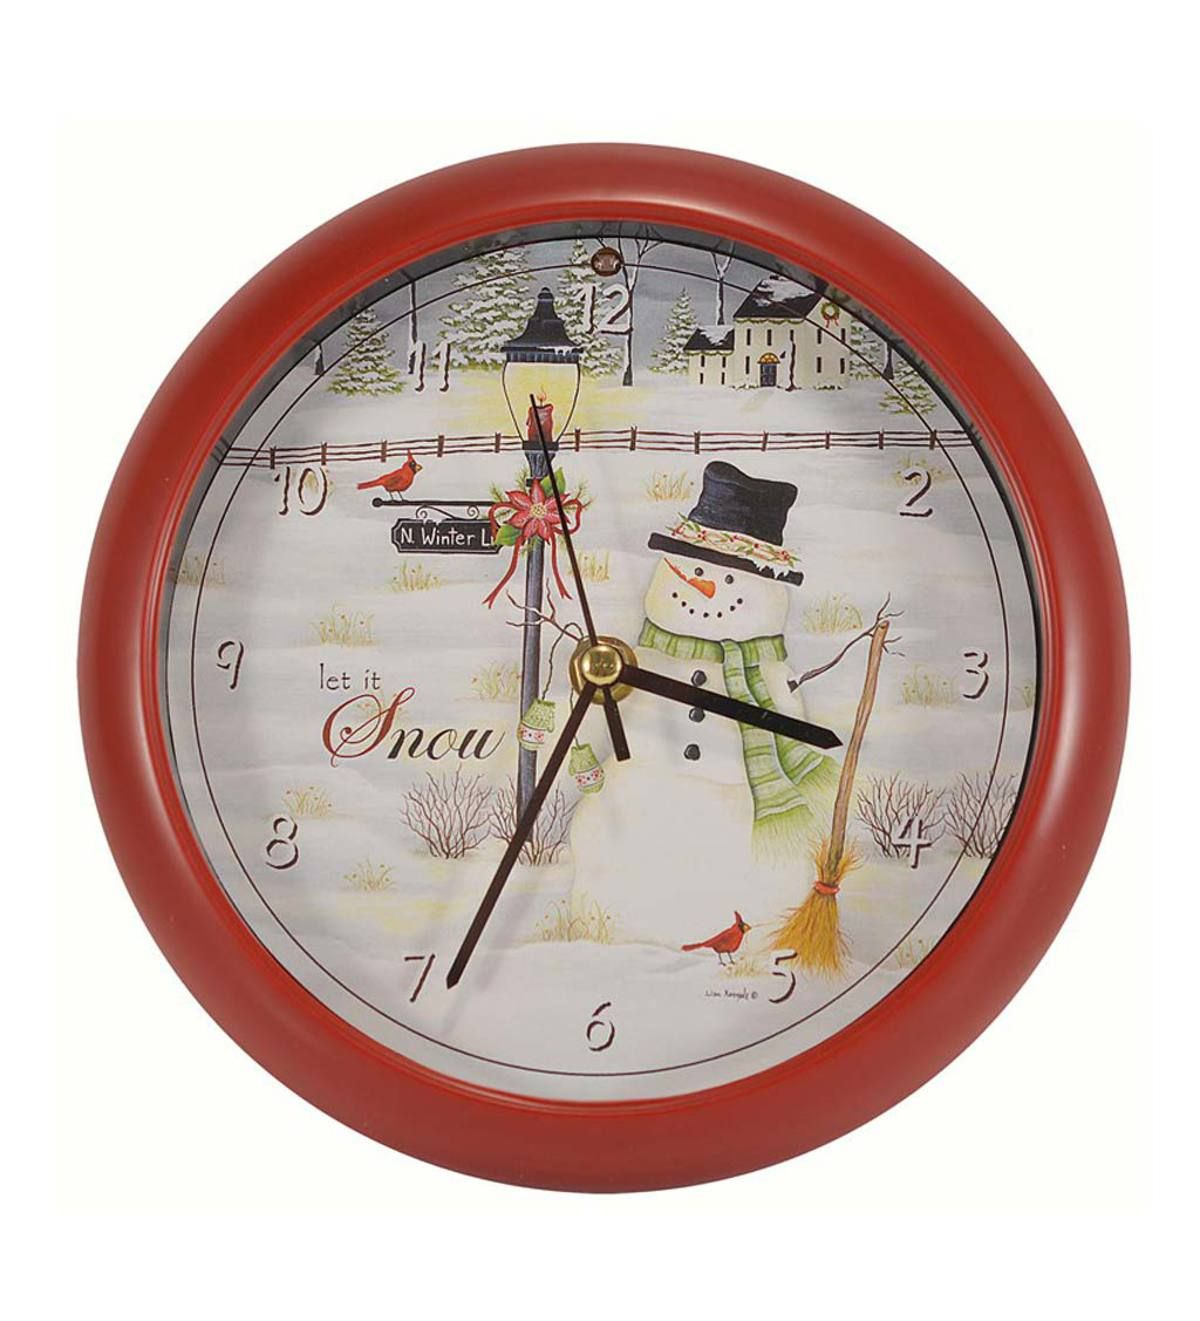 This Delightful Holiday Musical Snowman Clock Is A Must Have Holiday Decoration The Charming Illustration Features A H Holiday Musical Clock The Holiday Aisle